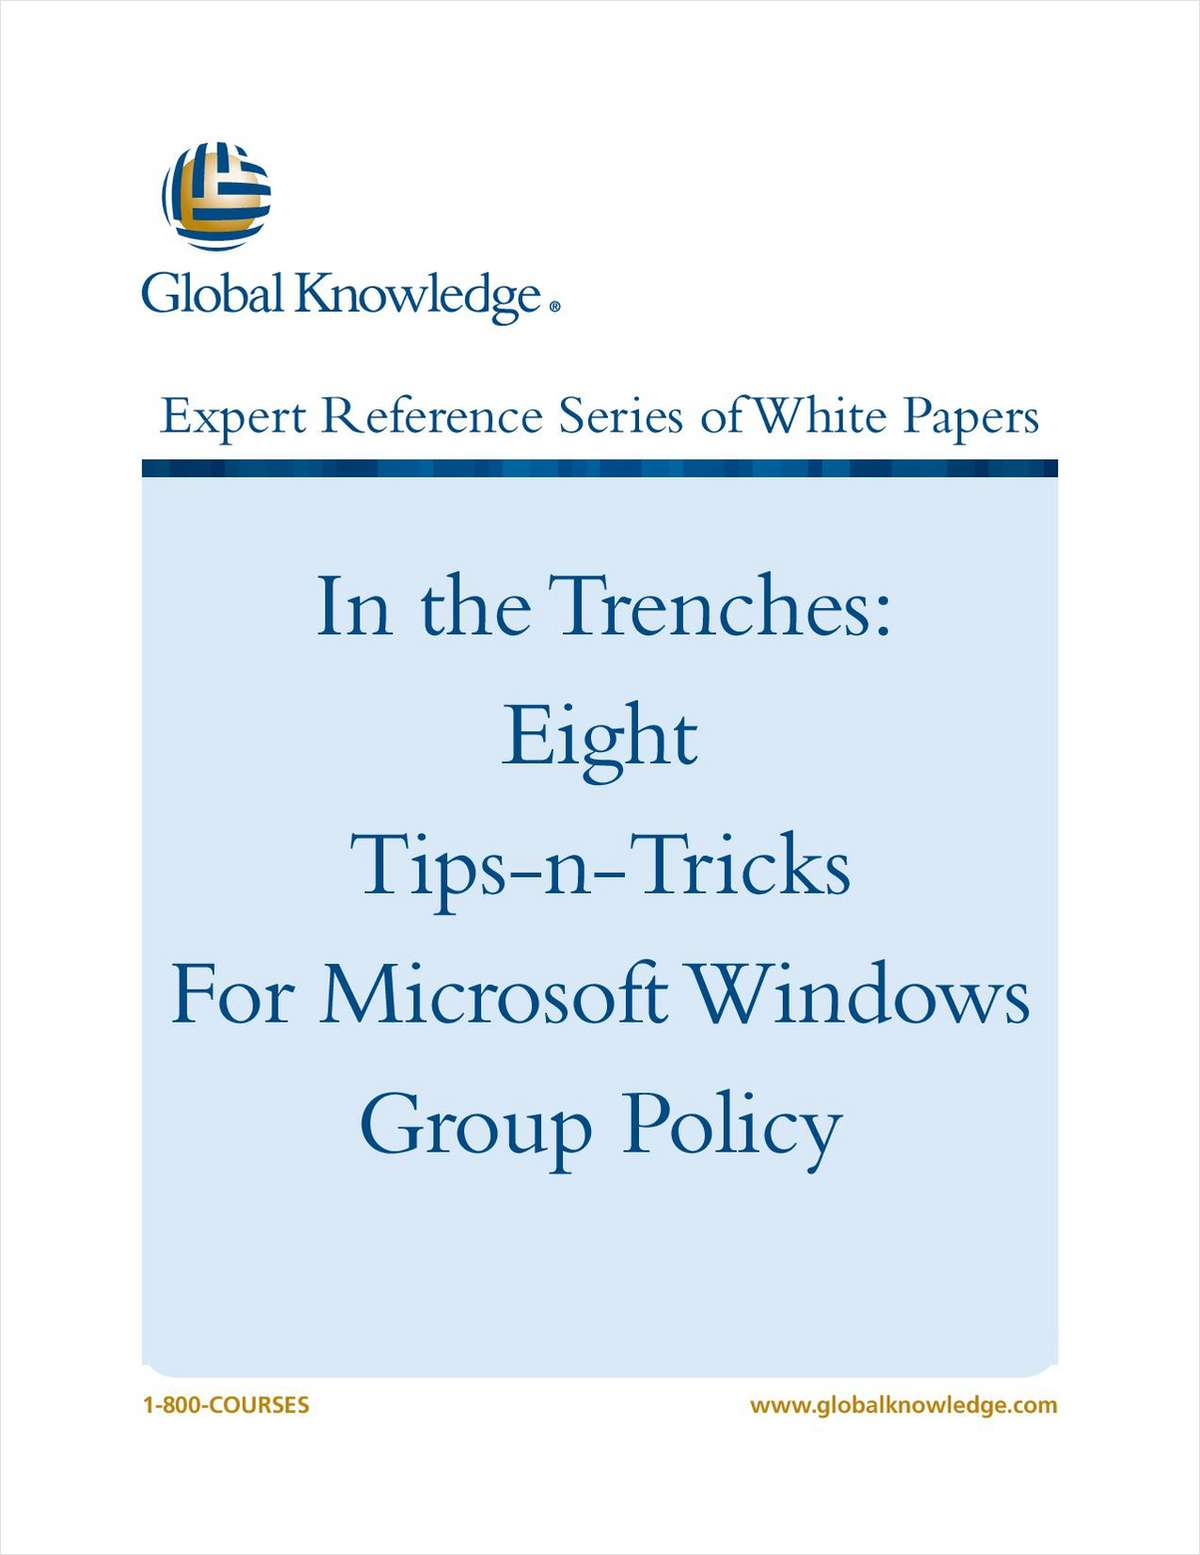 In the Trenches: Eight Tips-n-Tricks for Microsoft Windows Group Policy